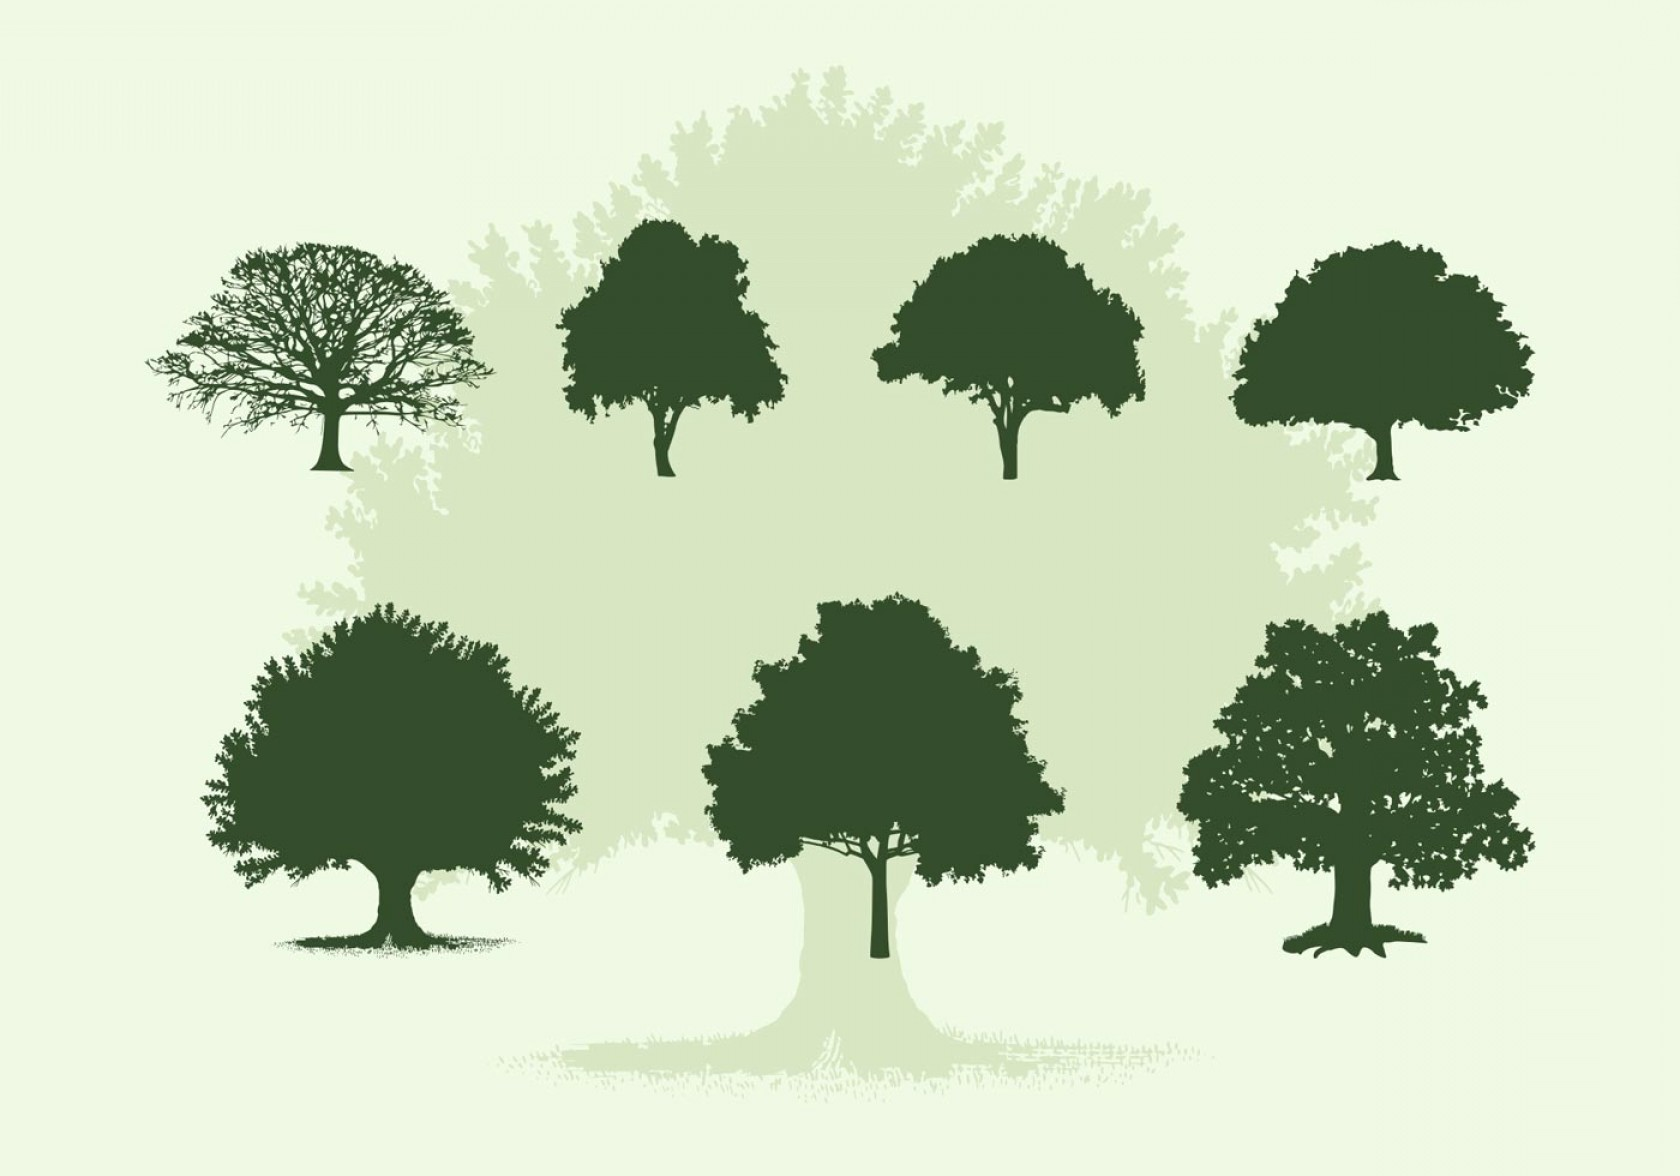 Oak Tree Silhouette Vector Graphics: Various Oak Trees Vector Silhouettes Download